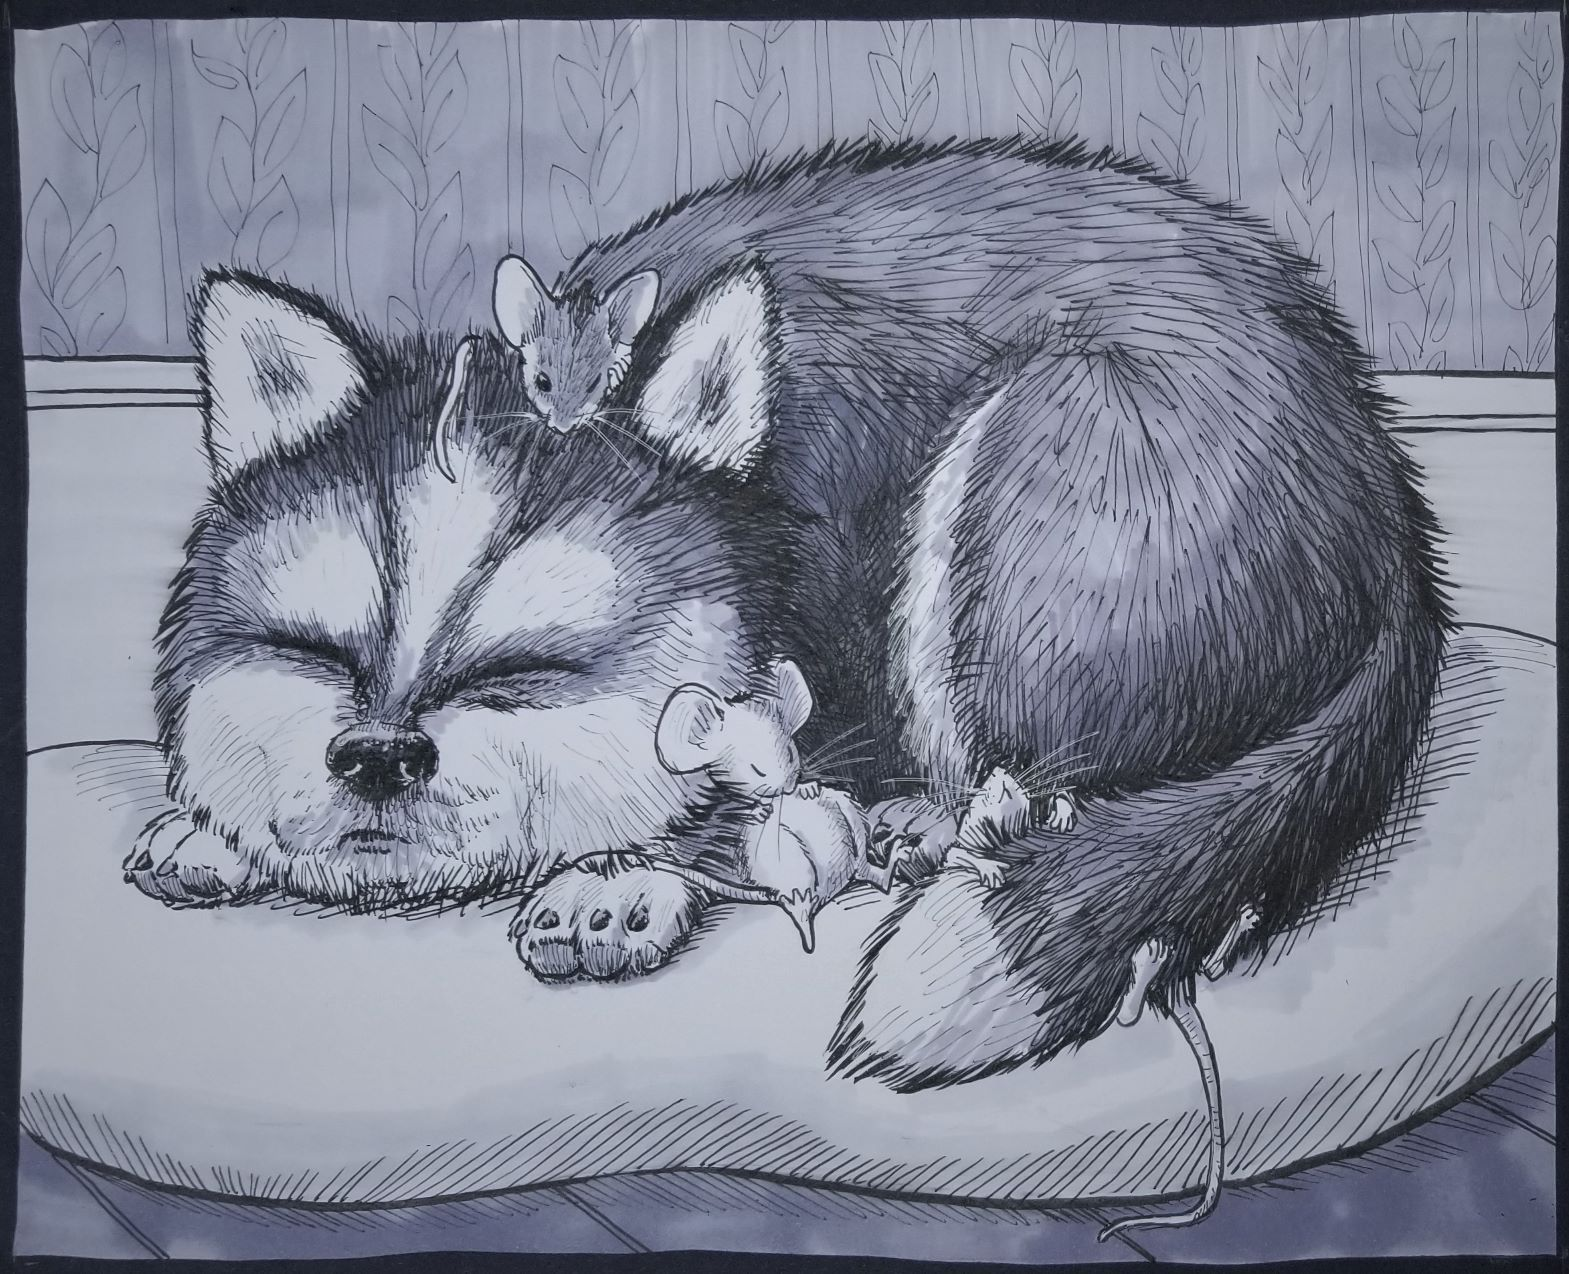 inktober day 6 Husky resized.jpg